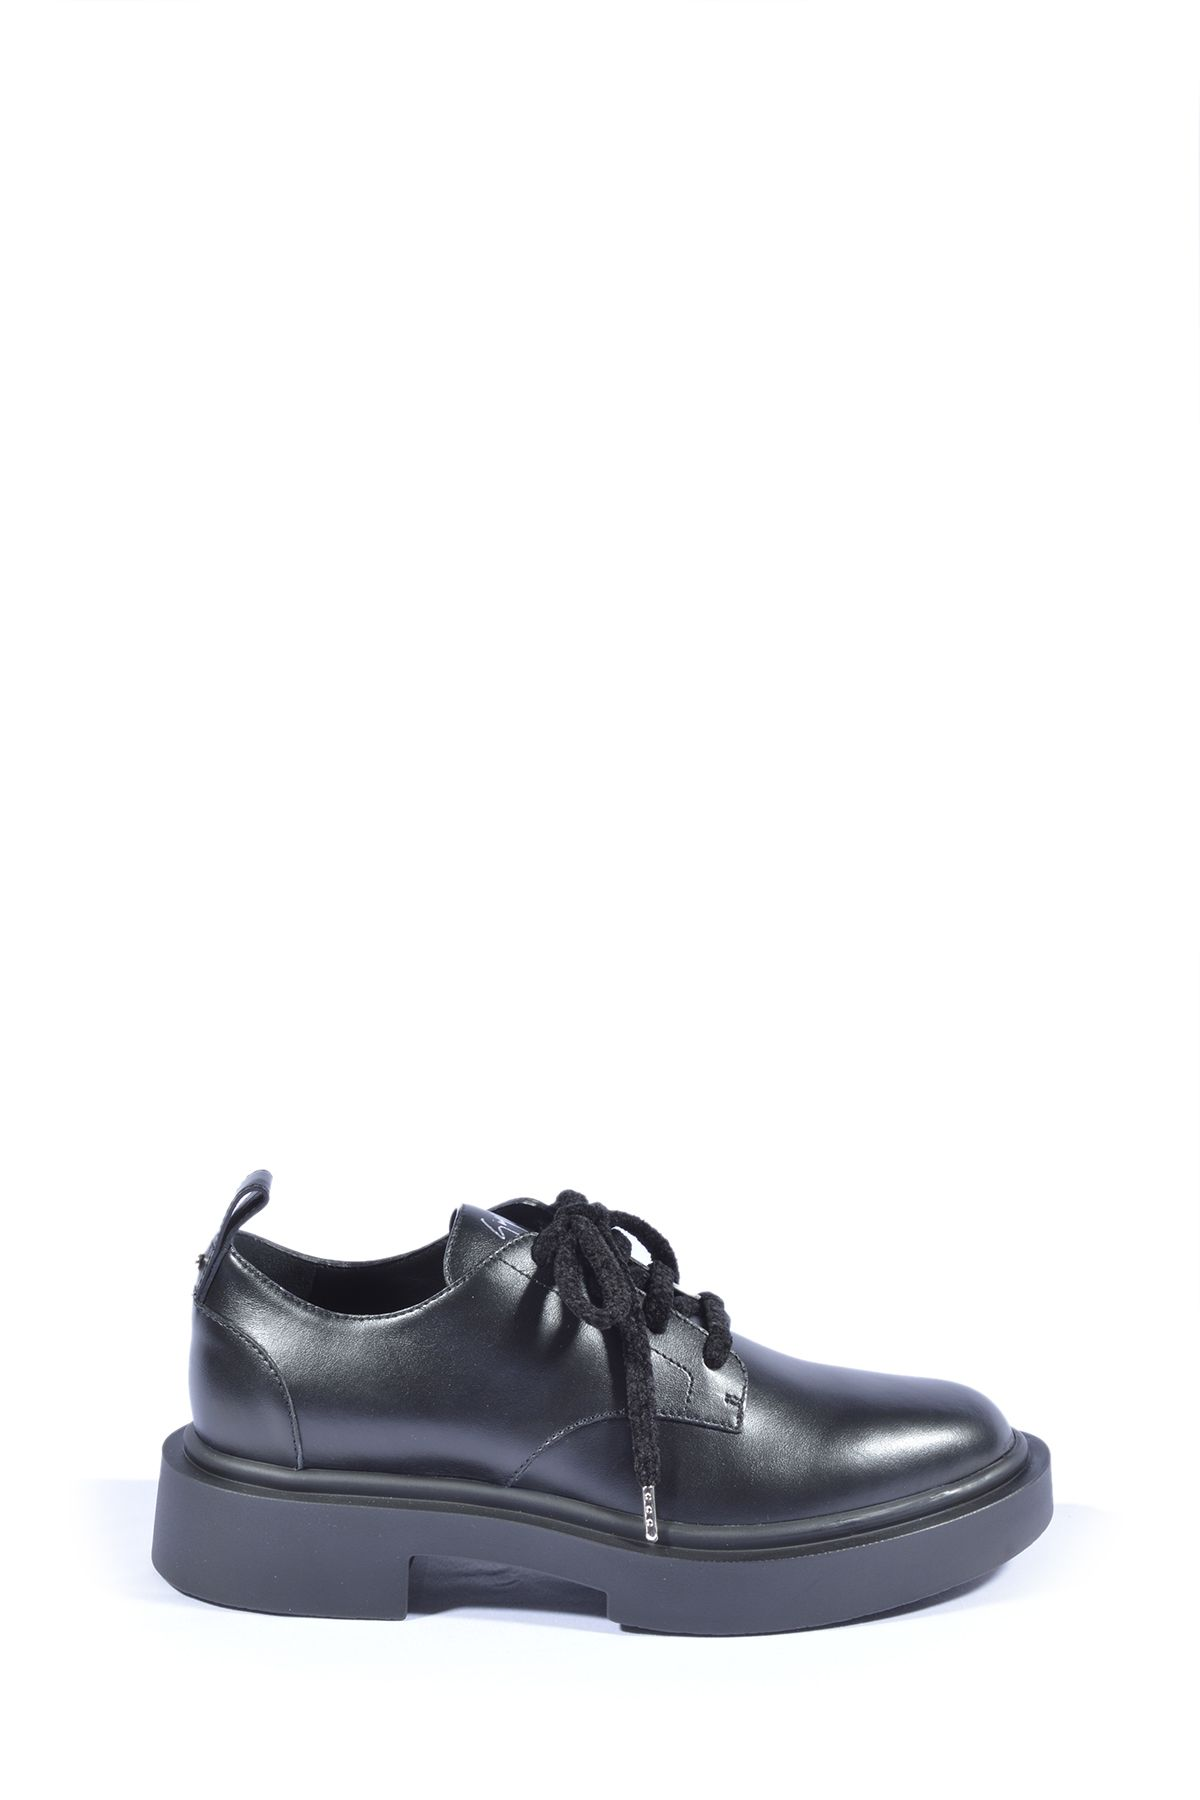 Giuseppe Zanotti GIUSEPPE ZANOTTI DESIGN MEN'S BLACK LEATHER LACE-UP SHOES